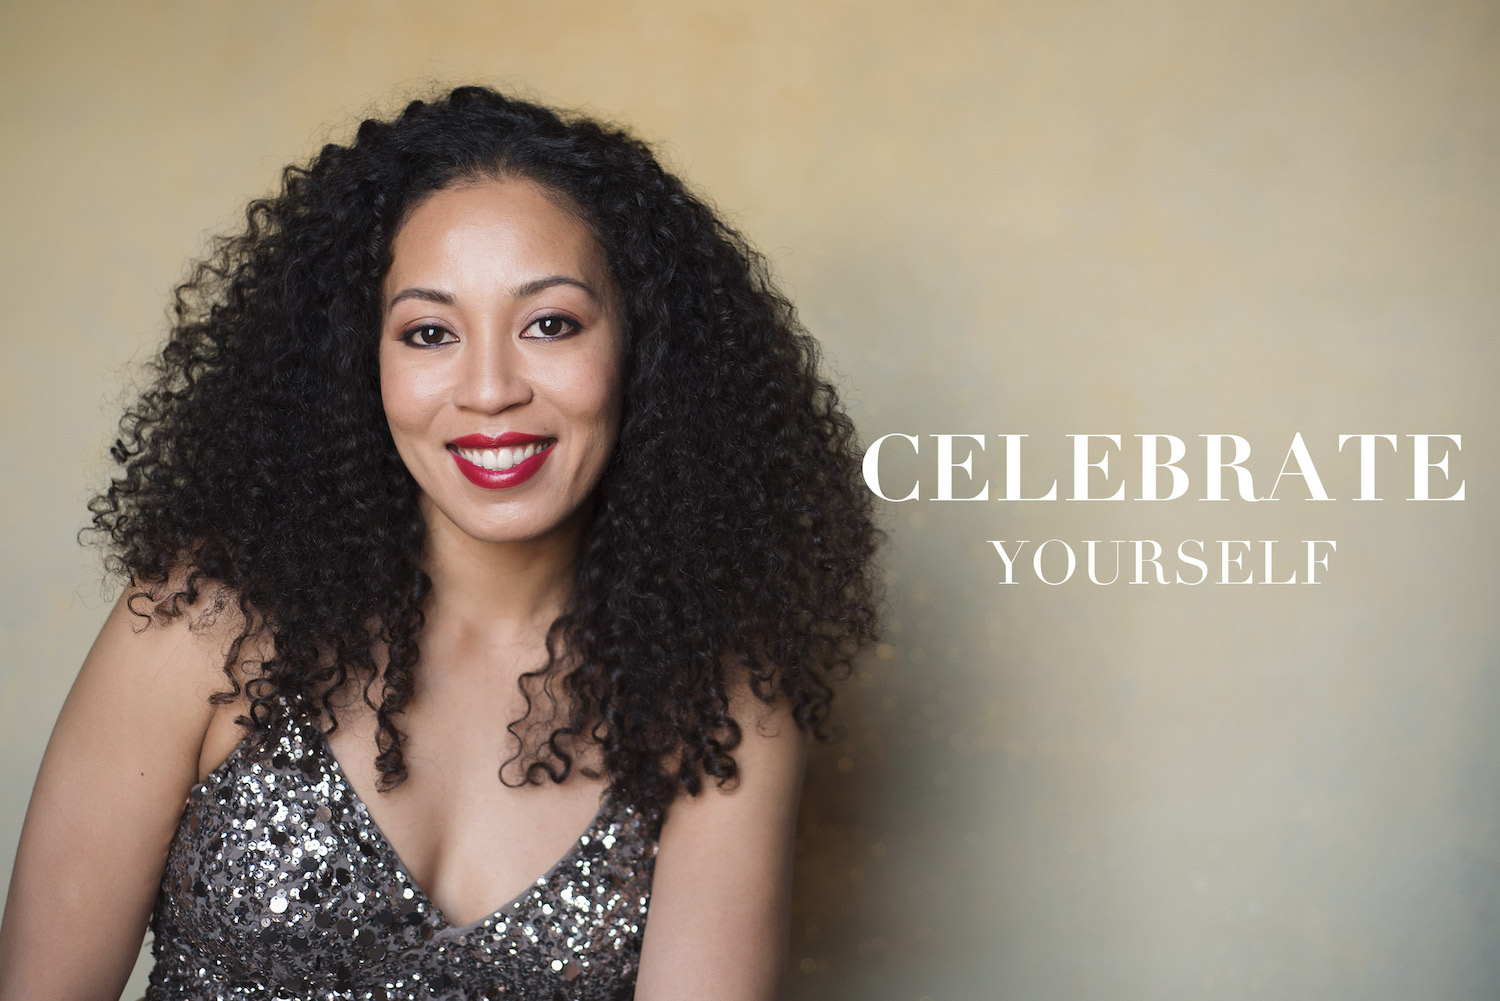 african-american-woman-celebrate-yourself.jpg